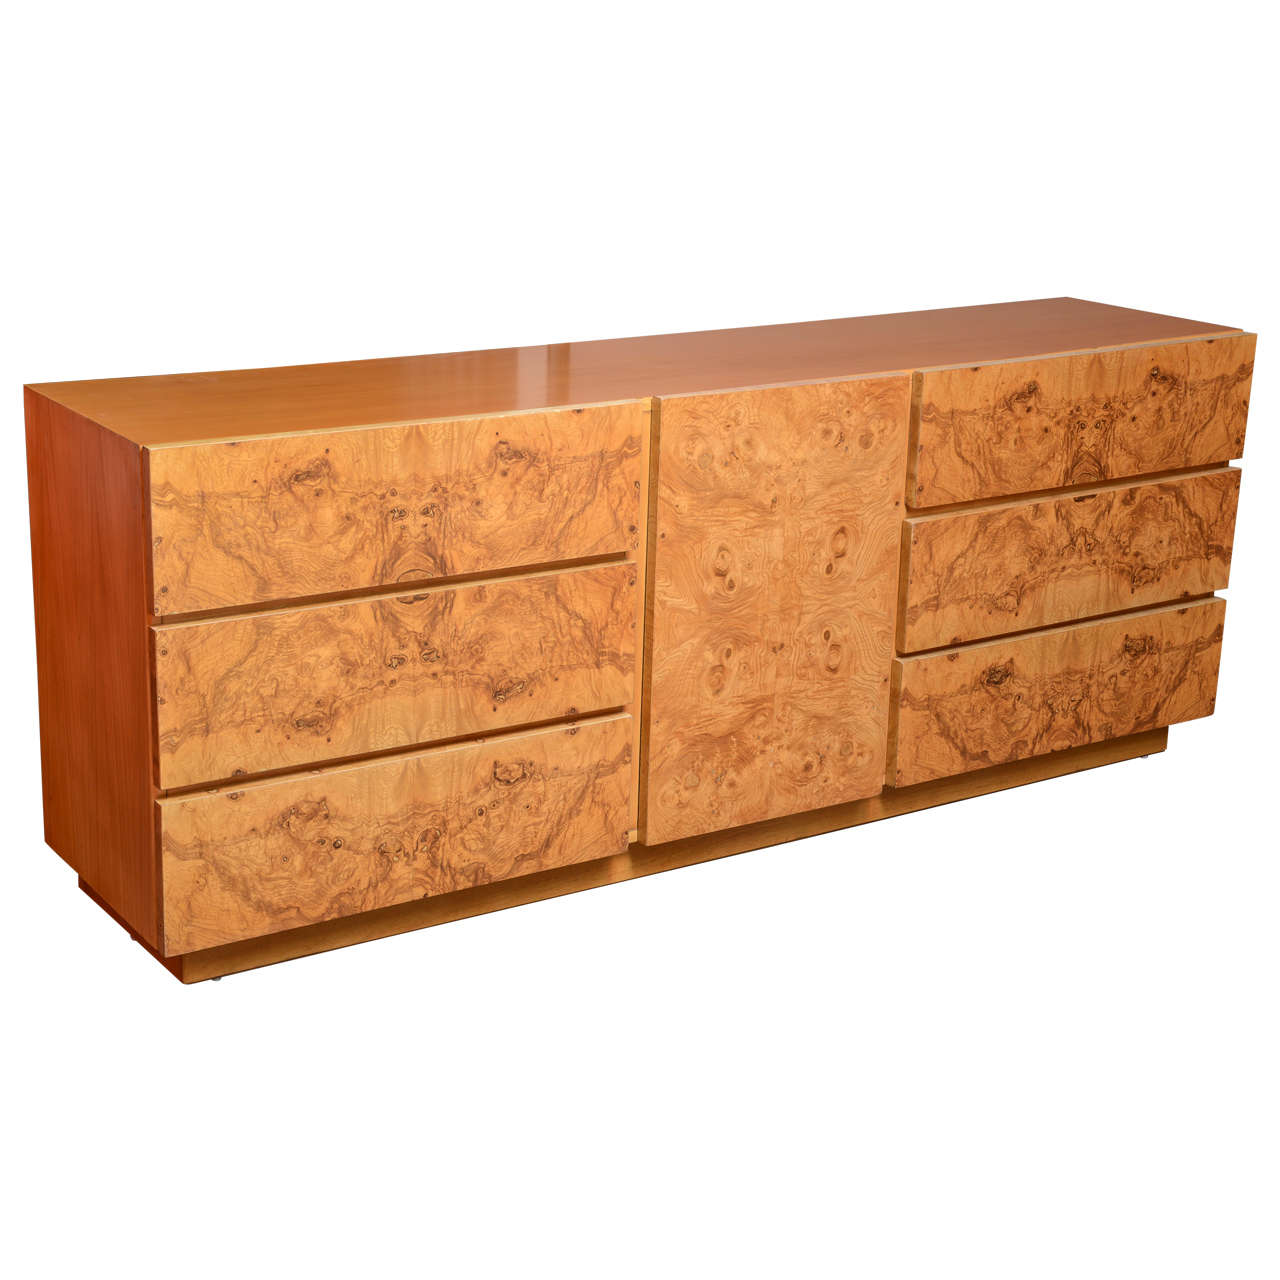 1970s Wood Furniture ~ Burl wood dresser by milo baughman for lane usa s at